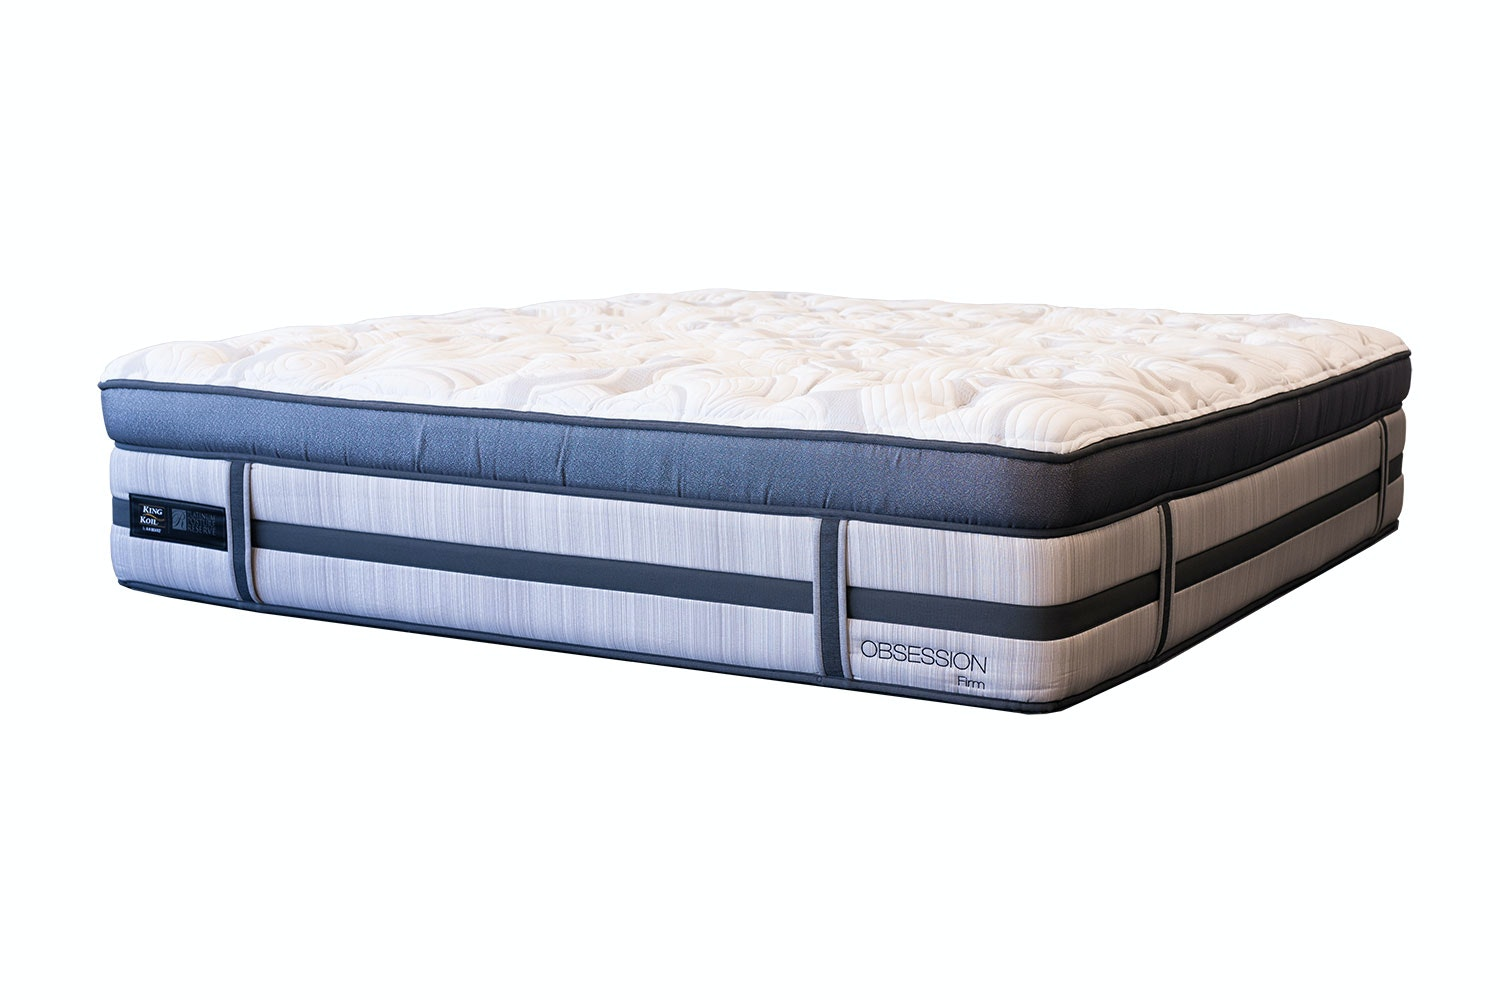 Obsession Firm Double Mattress by King Koil